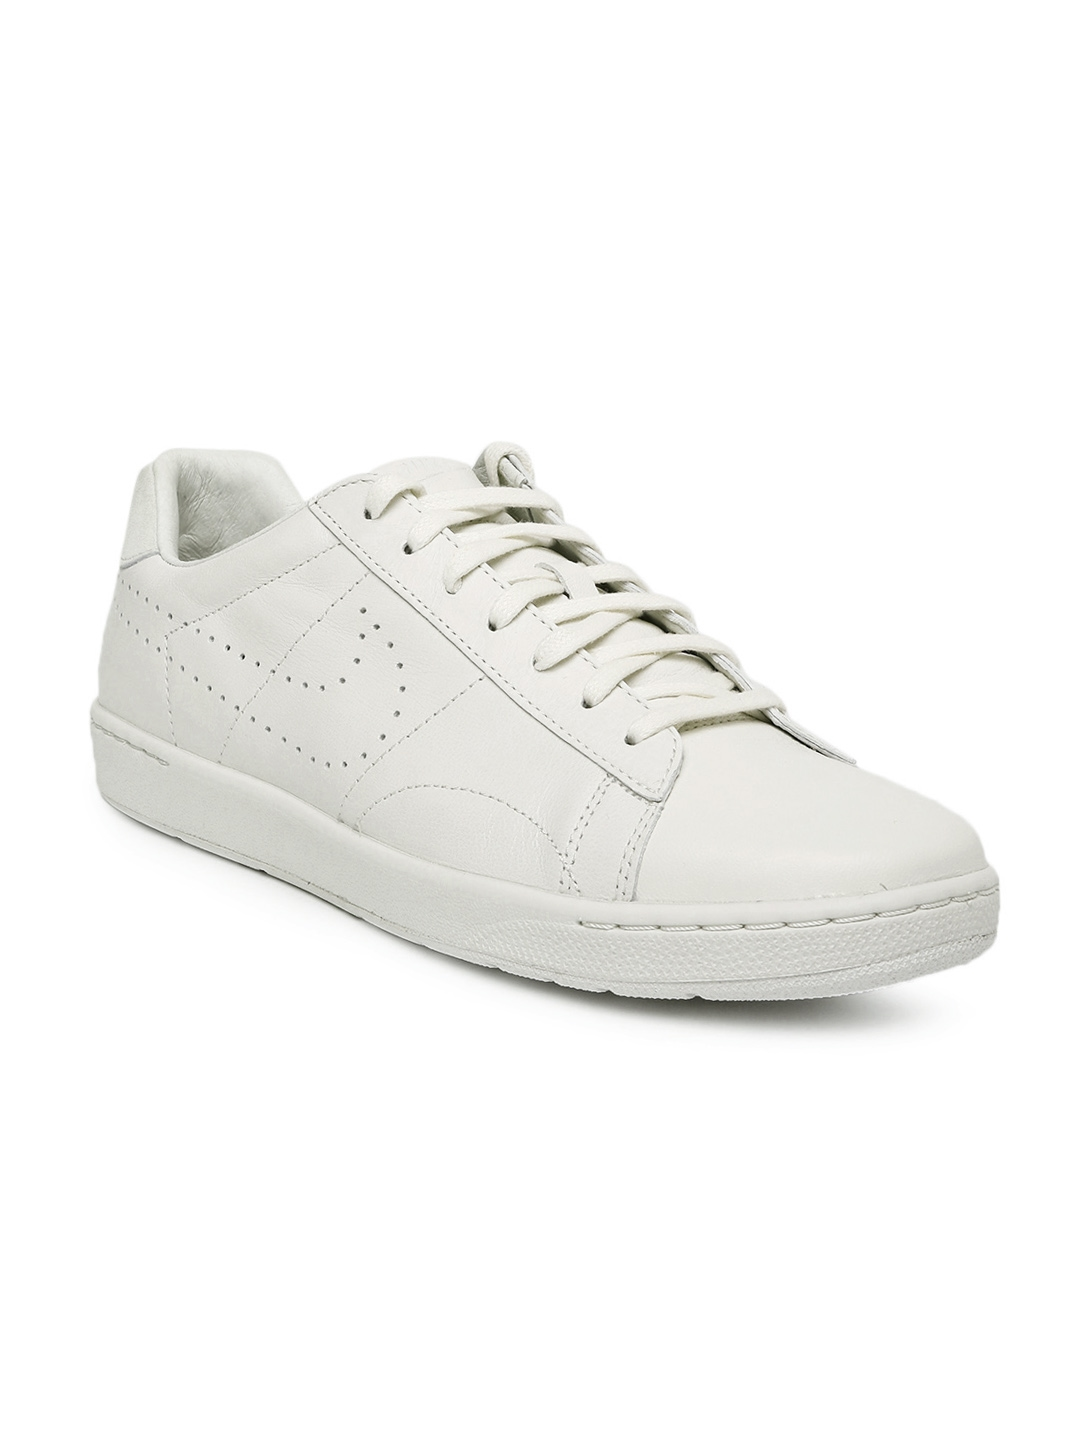 Ultra Men Sneakers Buy Nike White Classic Tennis Leather Casual 54RAjL